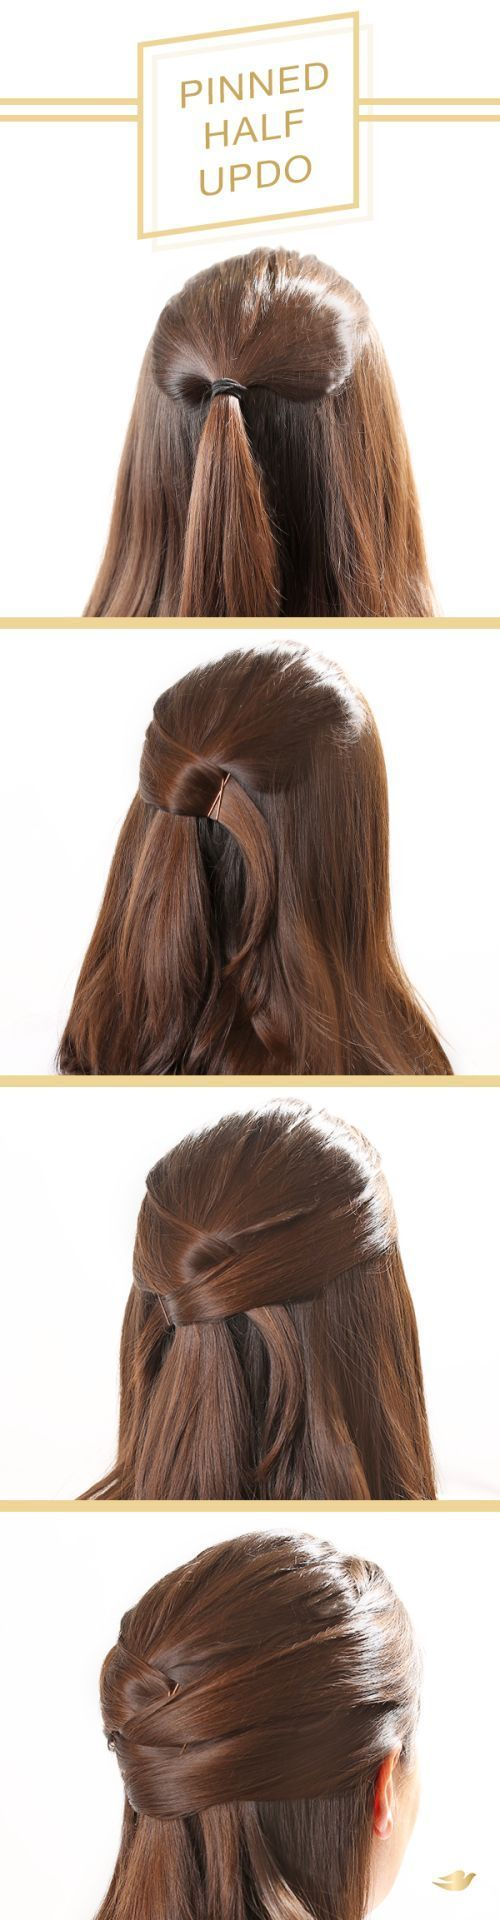 easy half up half down hairstyles step by step half updo